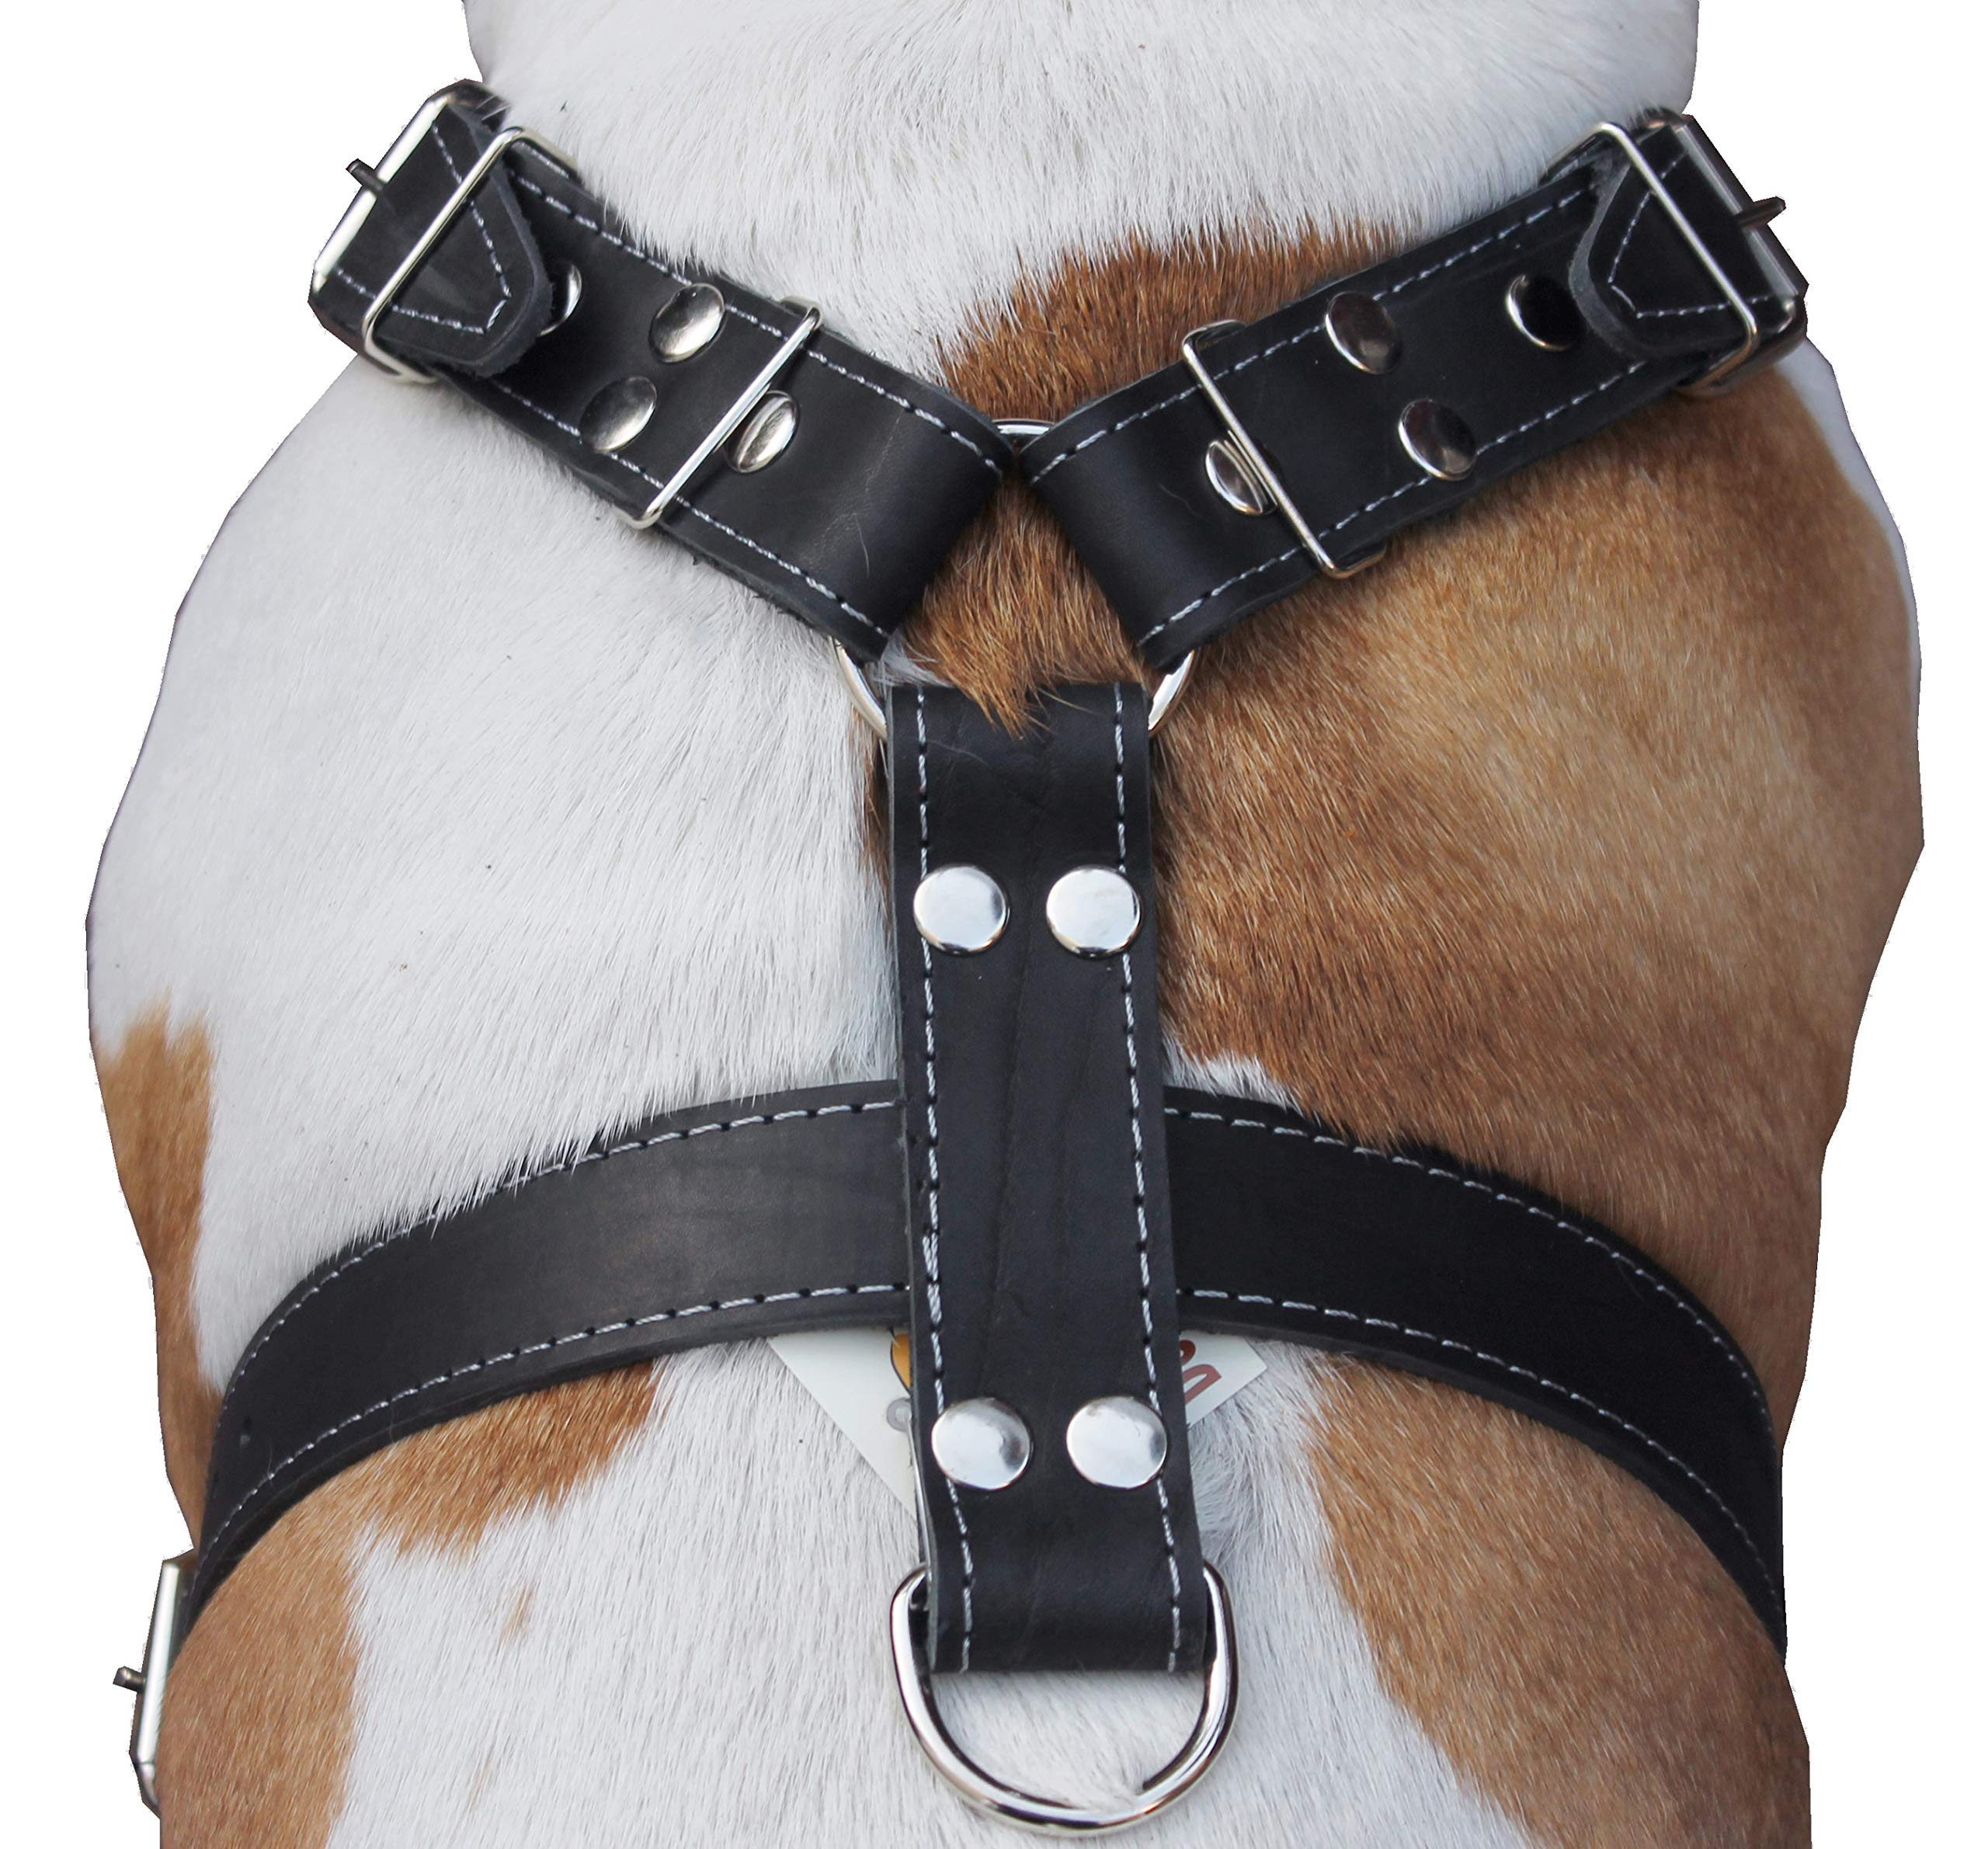 Black Genuine Leather Dog Harness, Large to XLarge. 33''-37'' Chest, 1.5'' Wide Straps, Rottweiler Bulldog